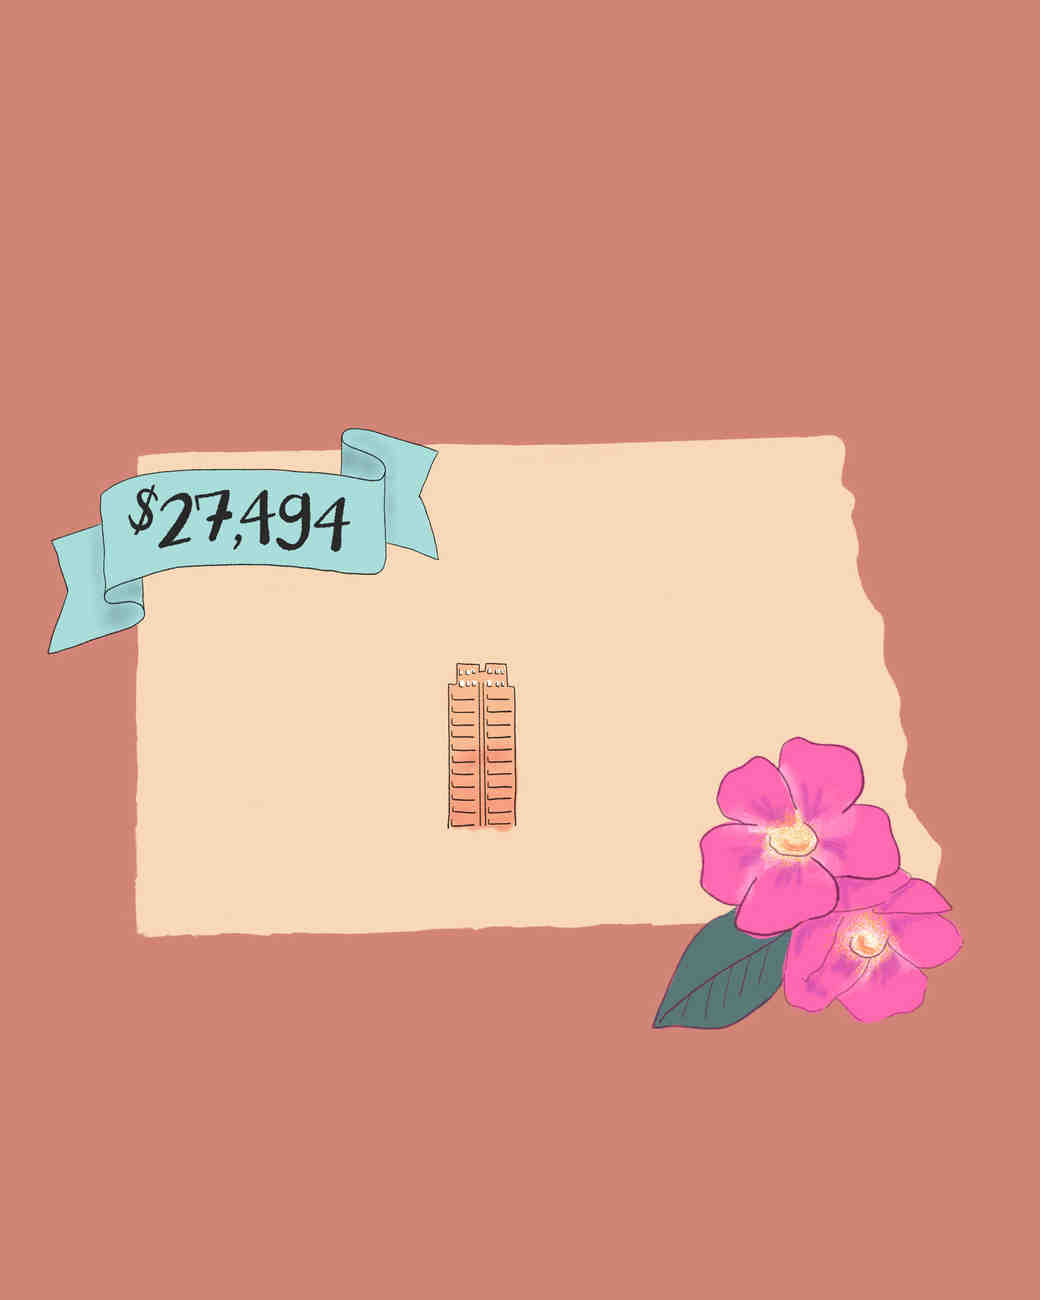 state wedding costs illustration north dakota